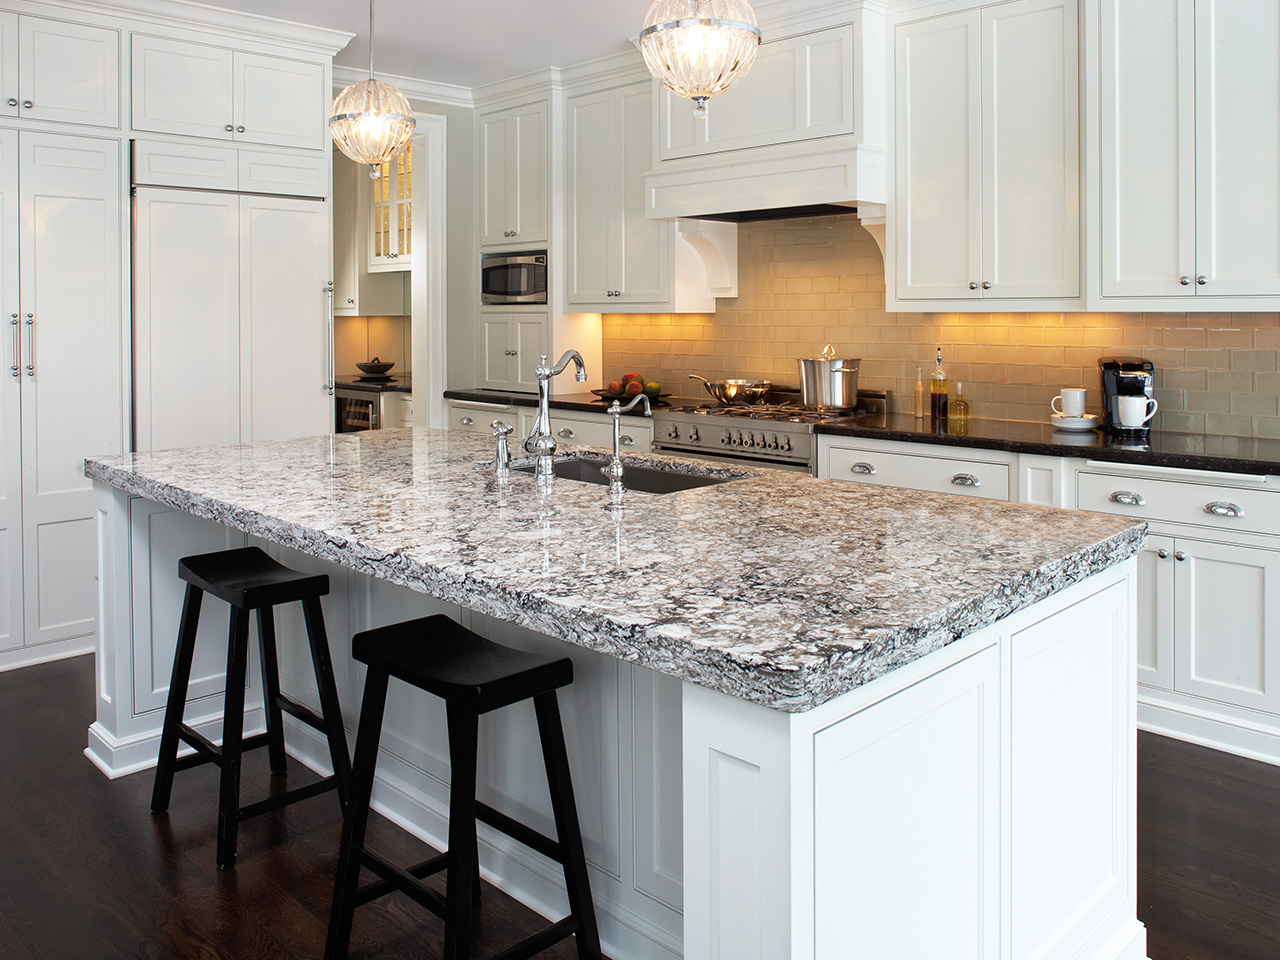 quartz countertop kitchen lowes image reviews of photos best home countertops